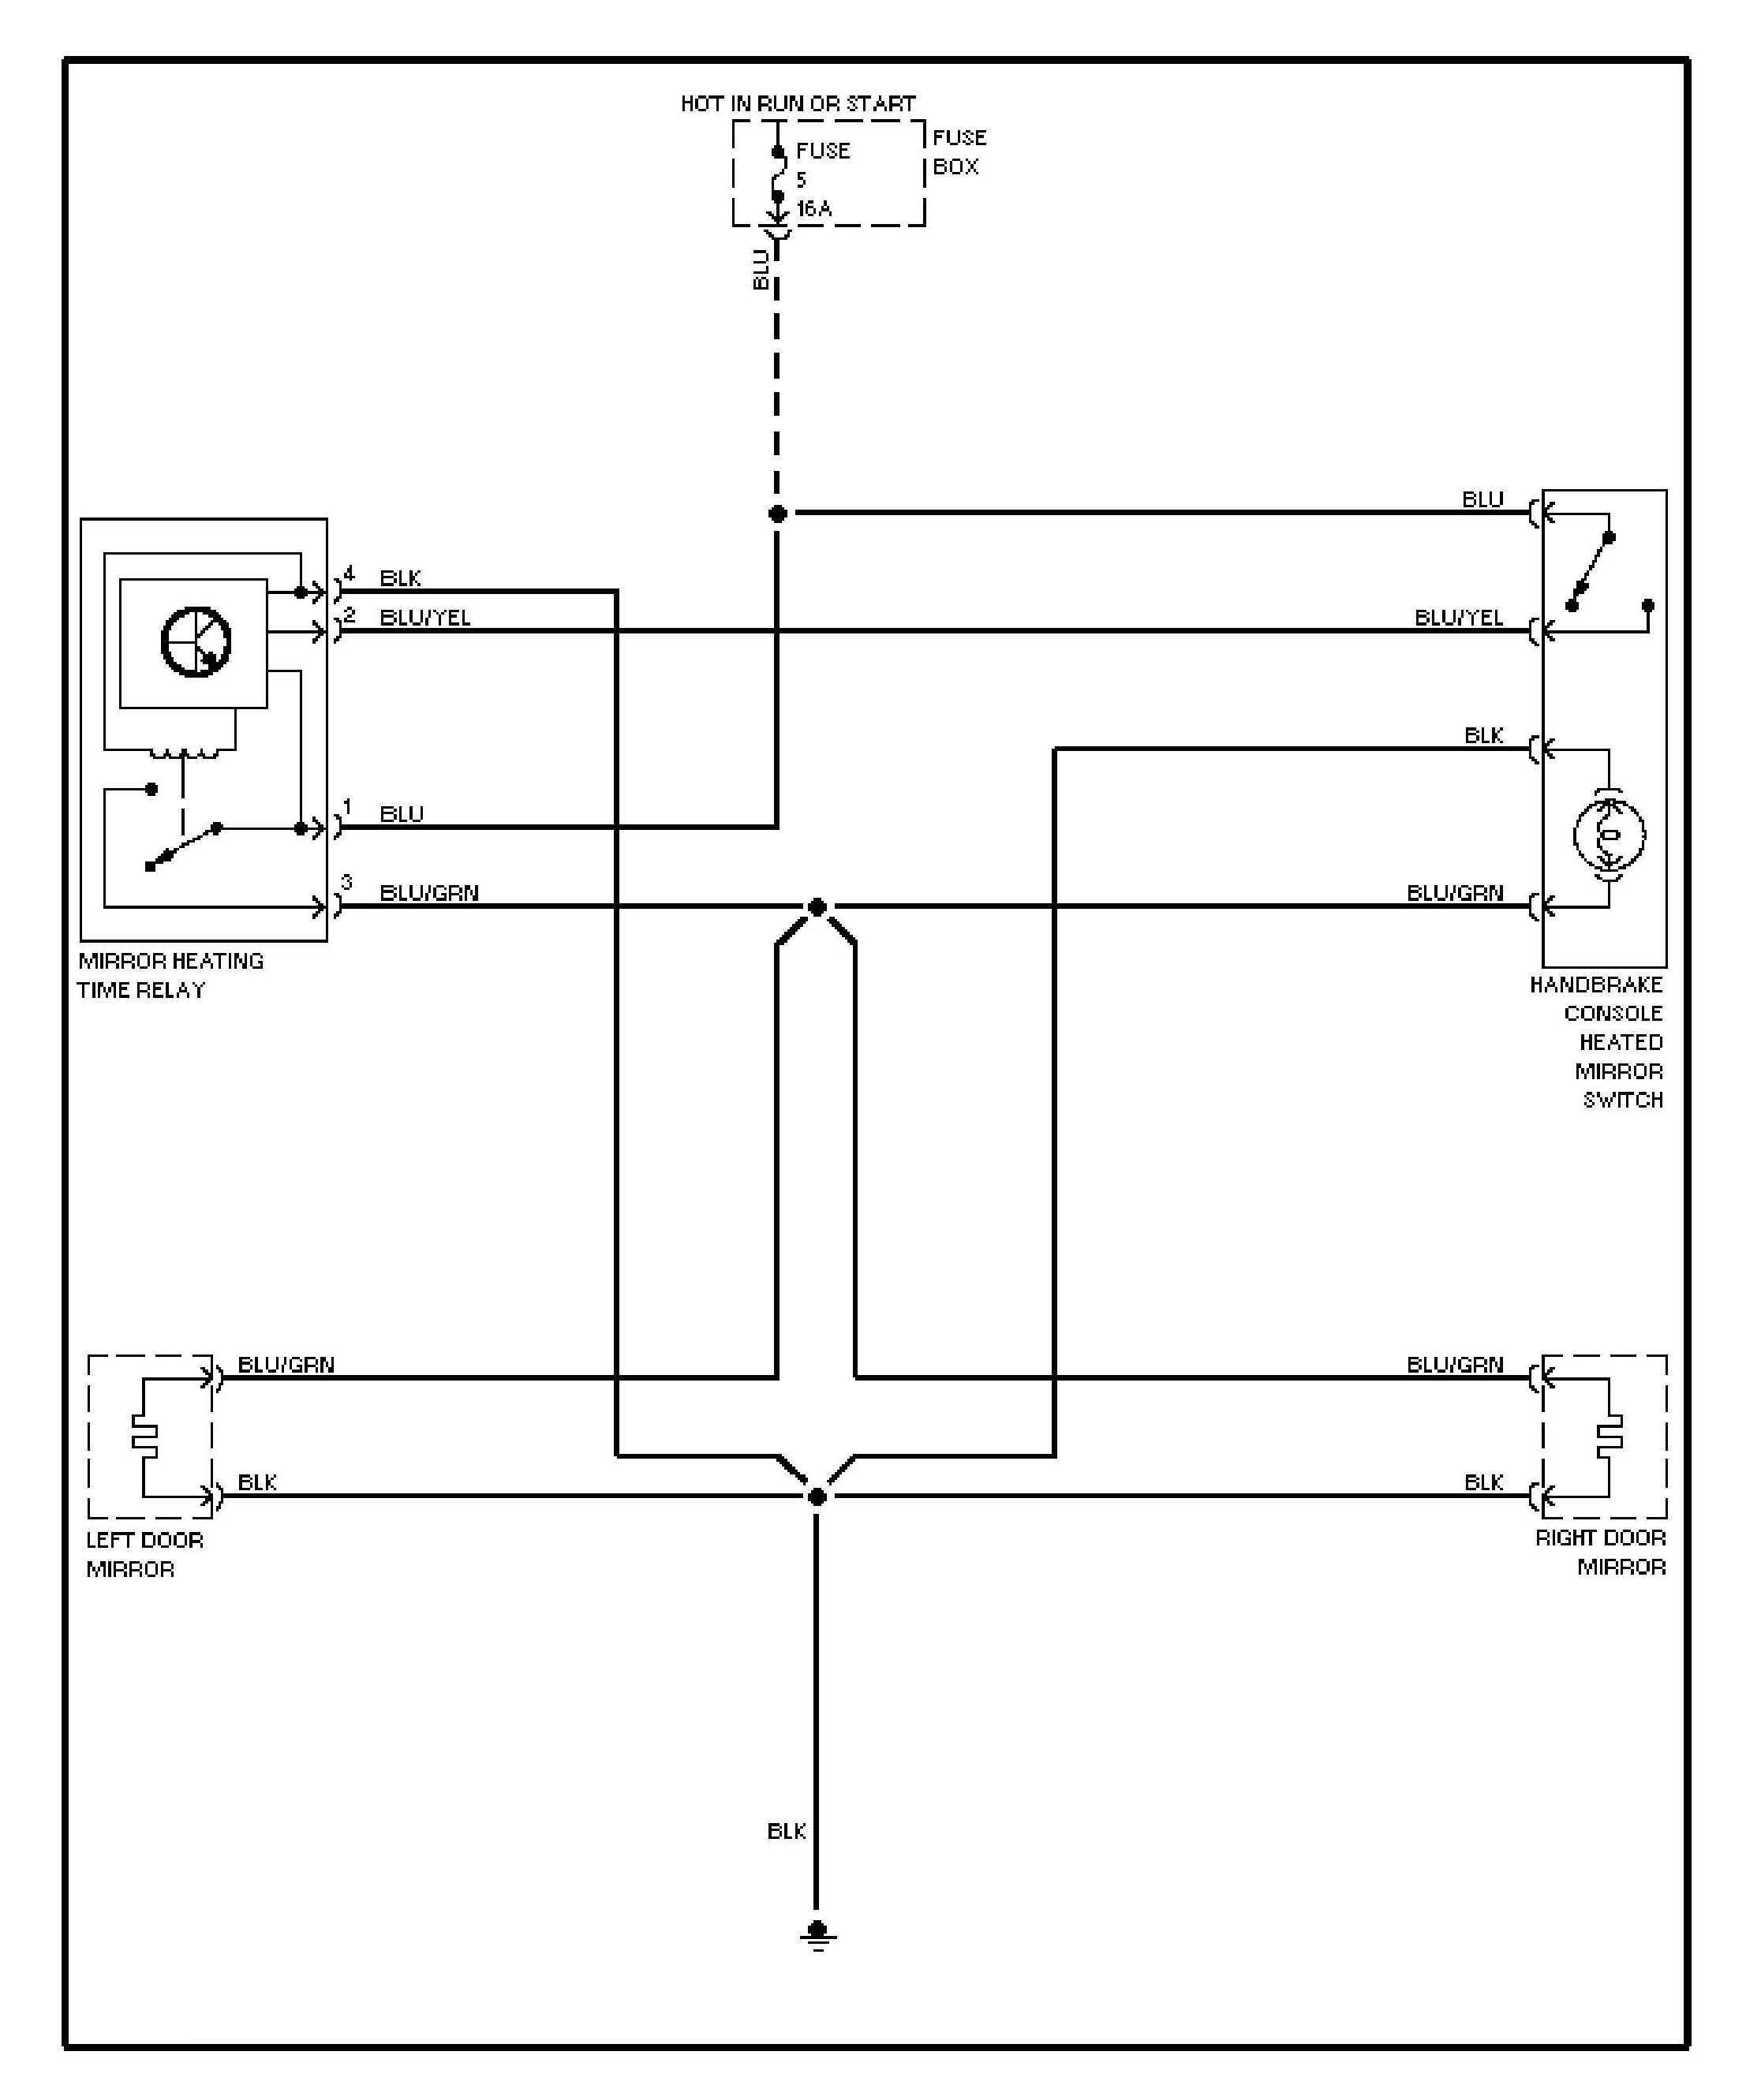 1993 toyota 4runner fuse box diagrams wiring library 1996 toyota 4runner fuse diagram 1993 toyota 4runner fuse box diagrams